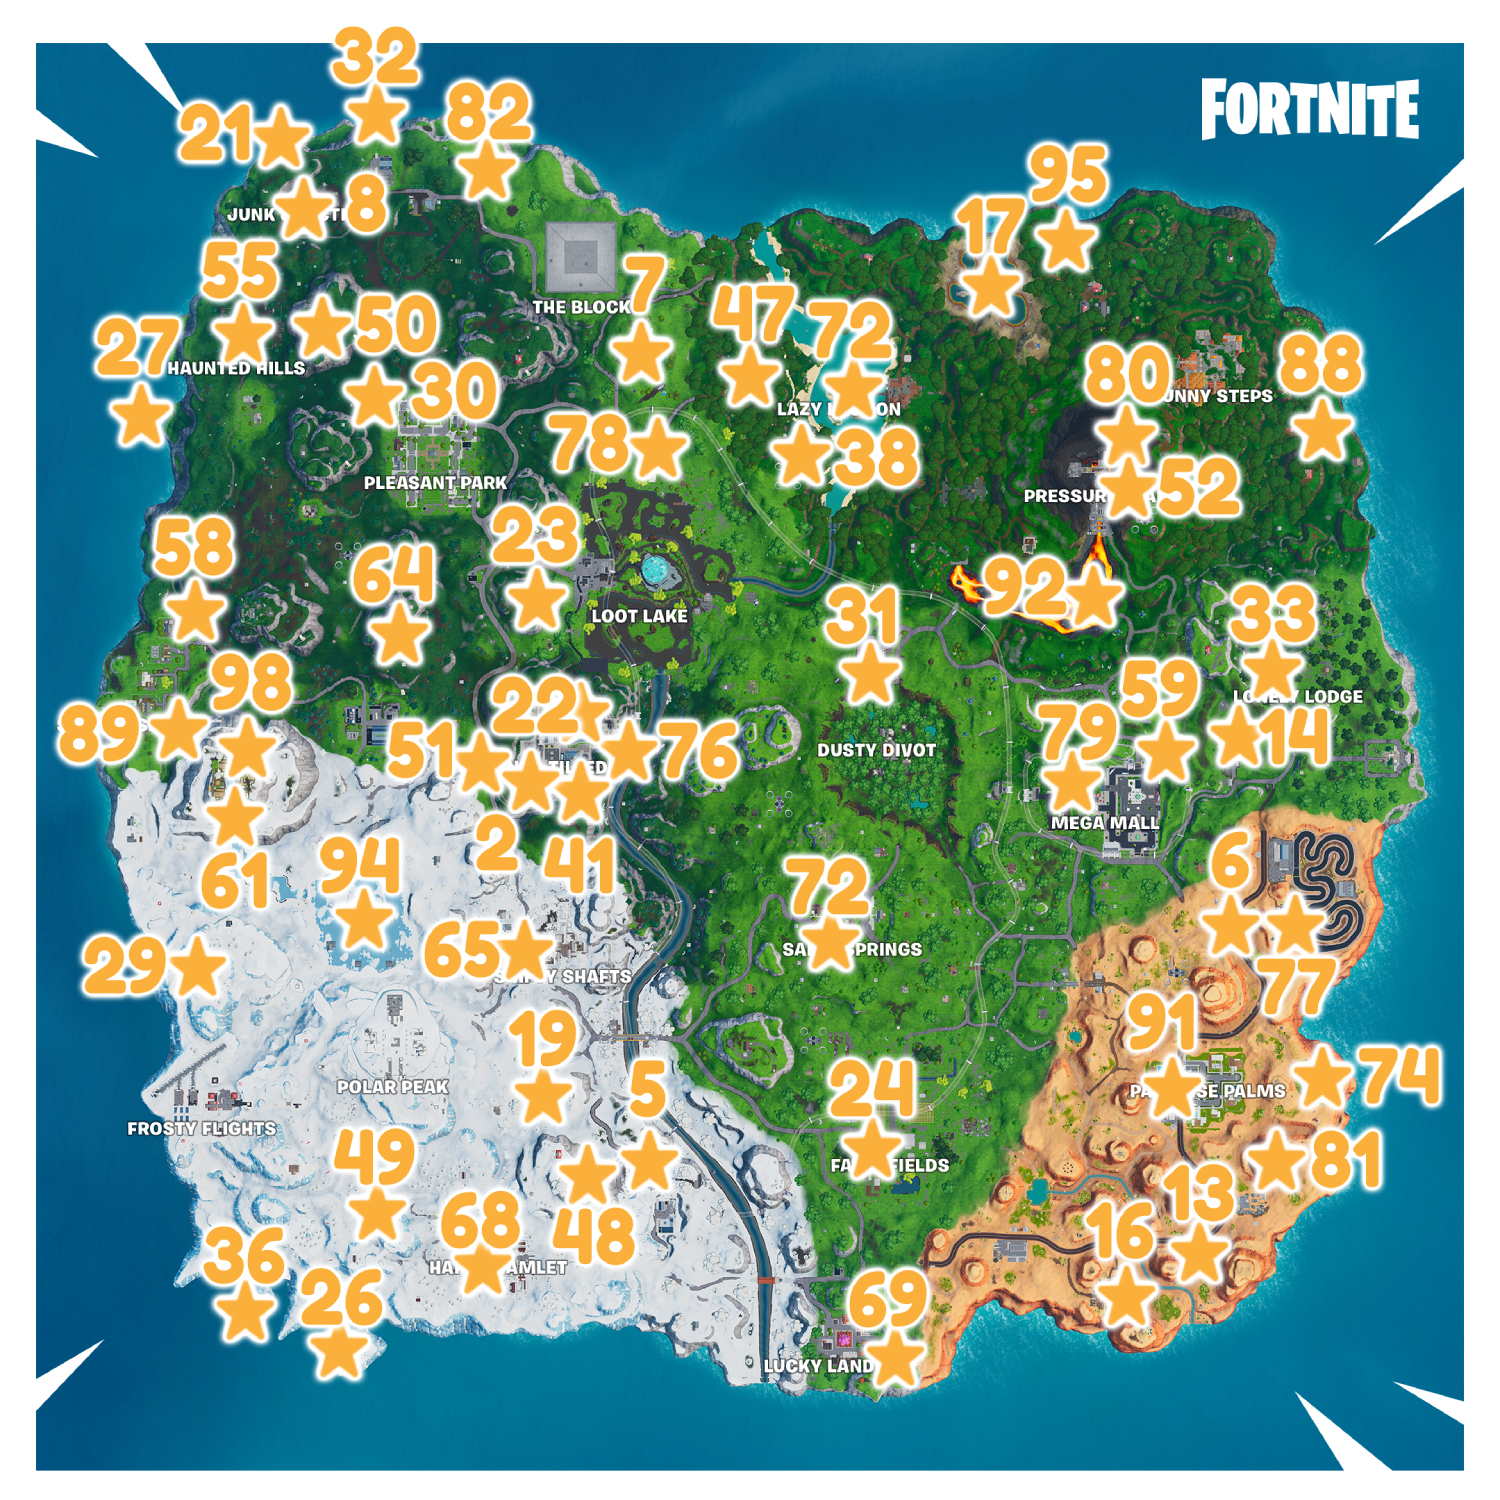 Fortnite Fortbyte 72 Found Within Salty Springs